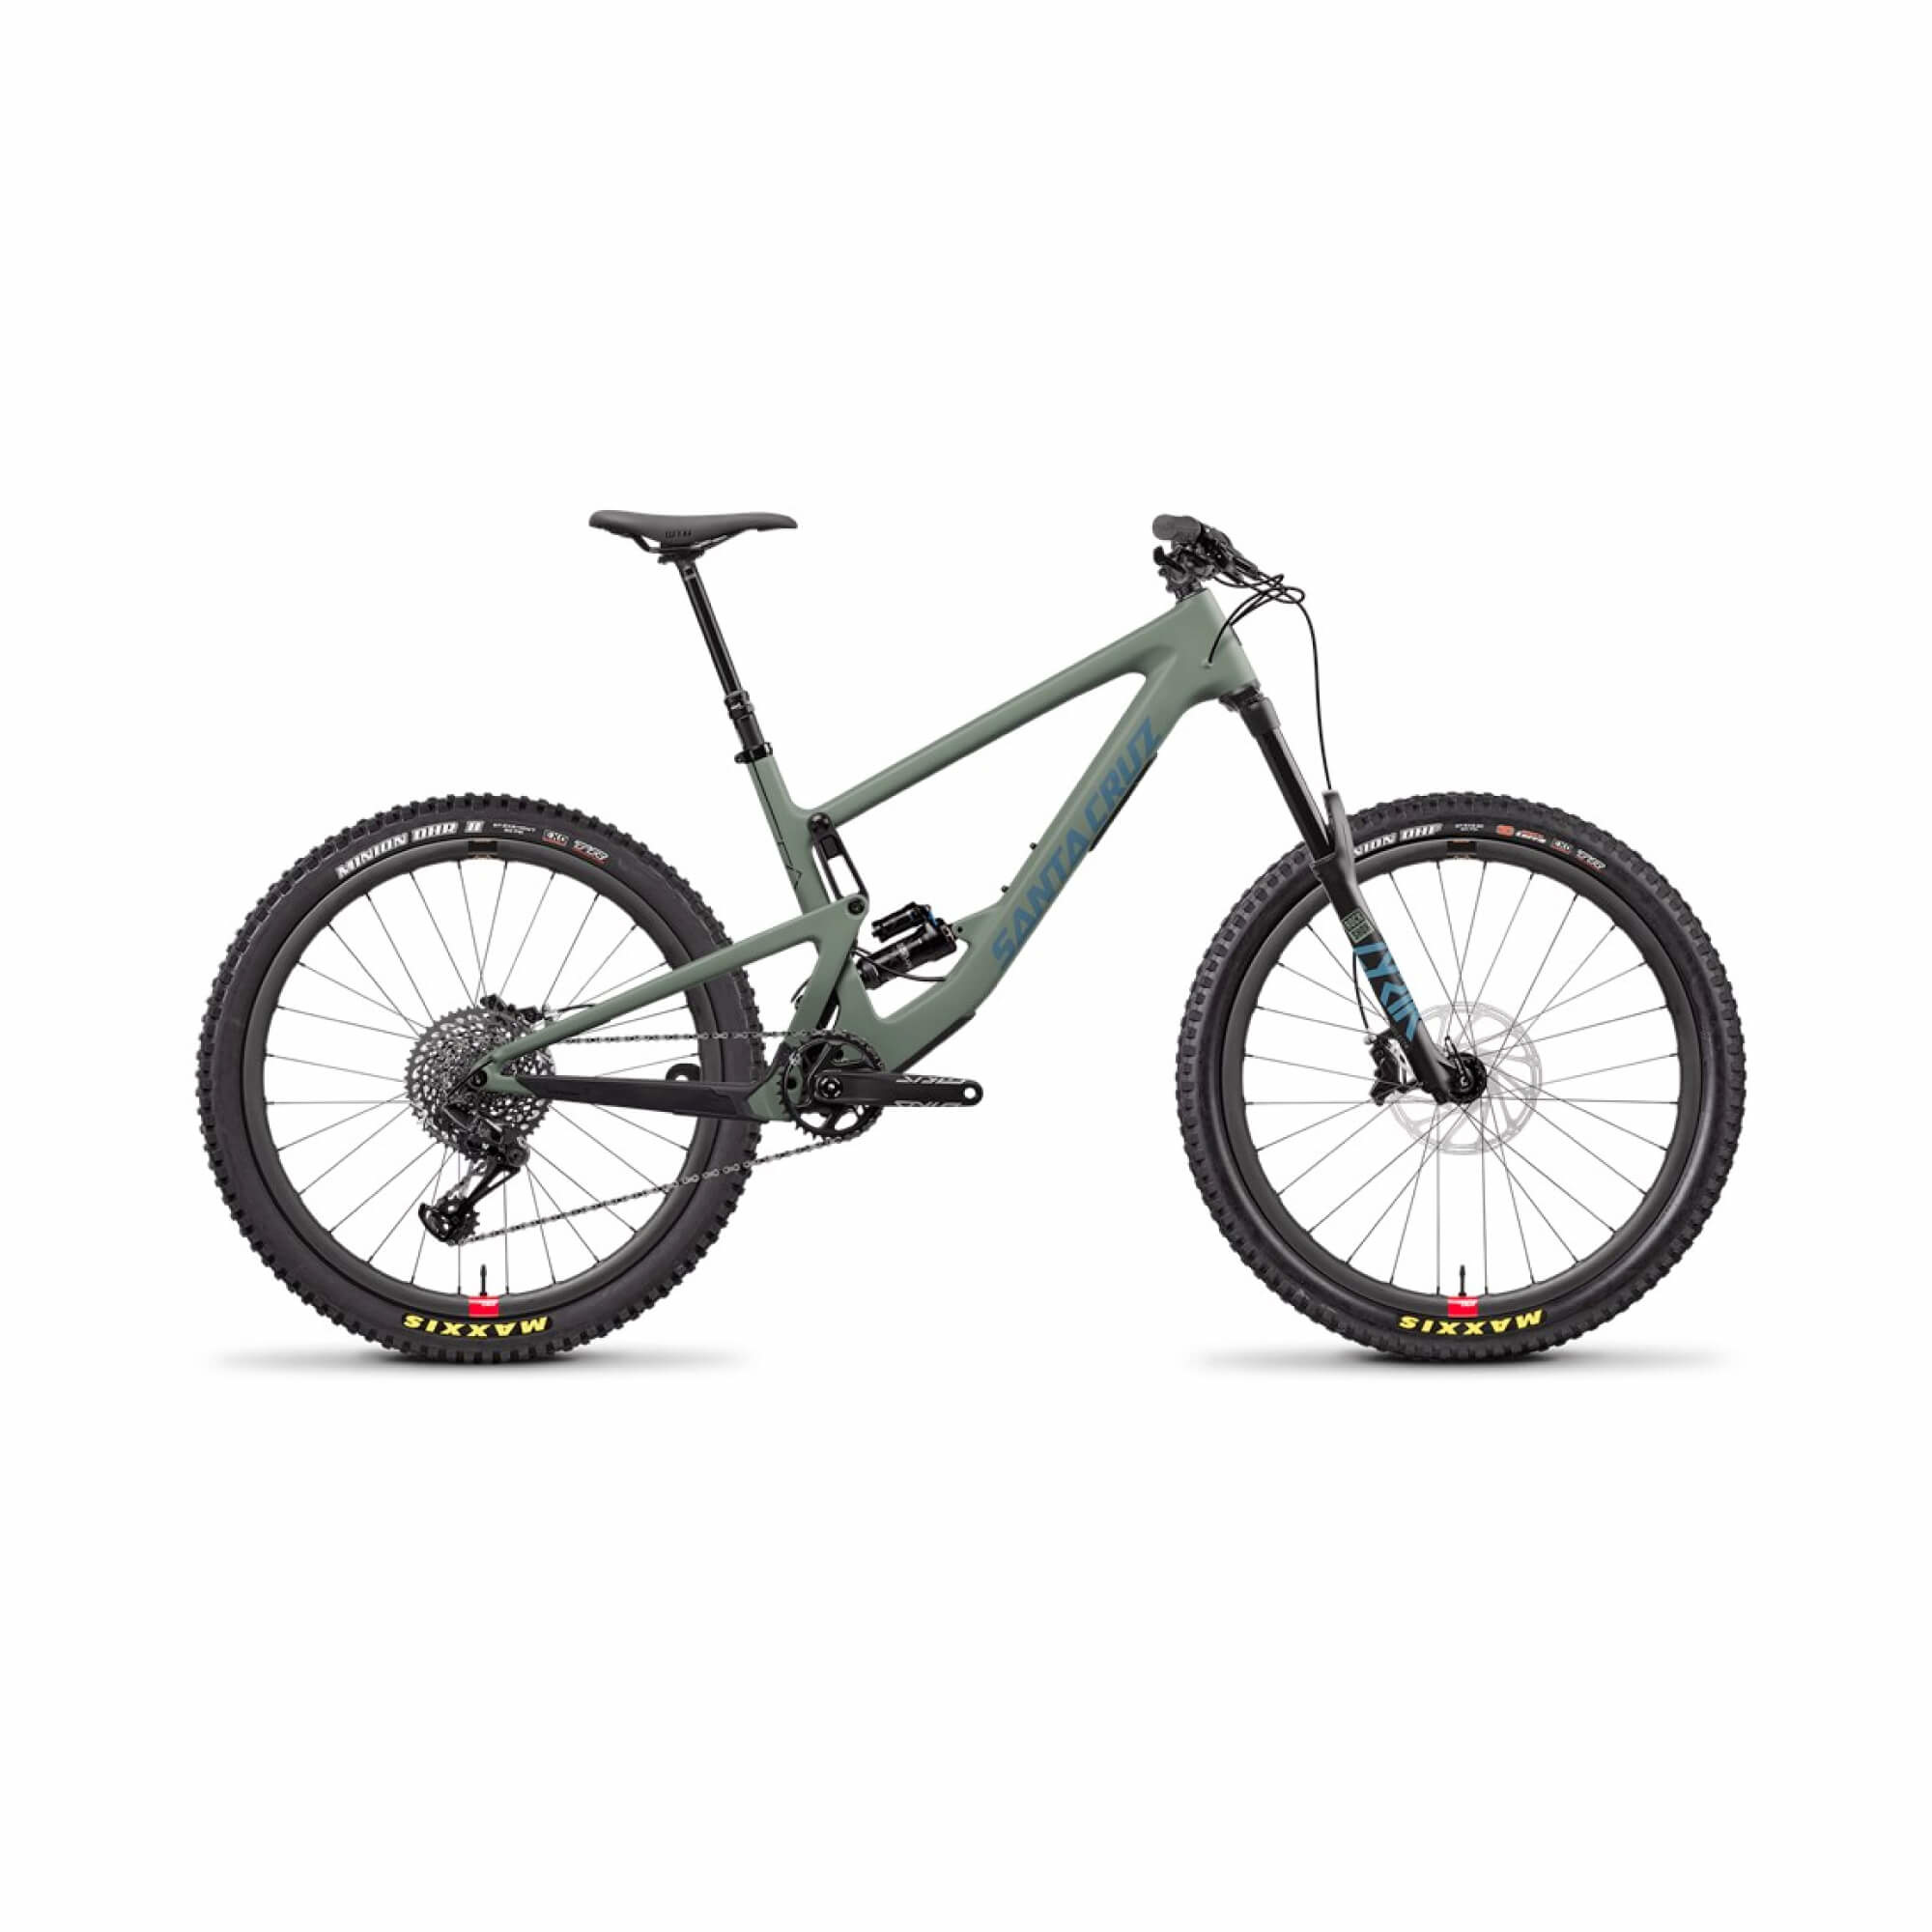 Bronson 3.0 C 27.5 S GX RS Lyrik Select +160 Matte Olive Small 2020-1